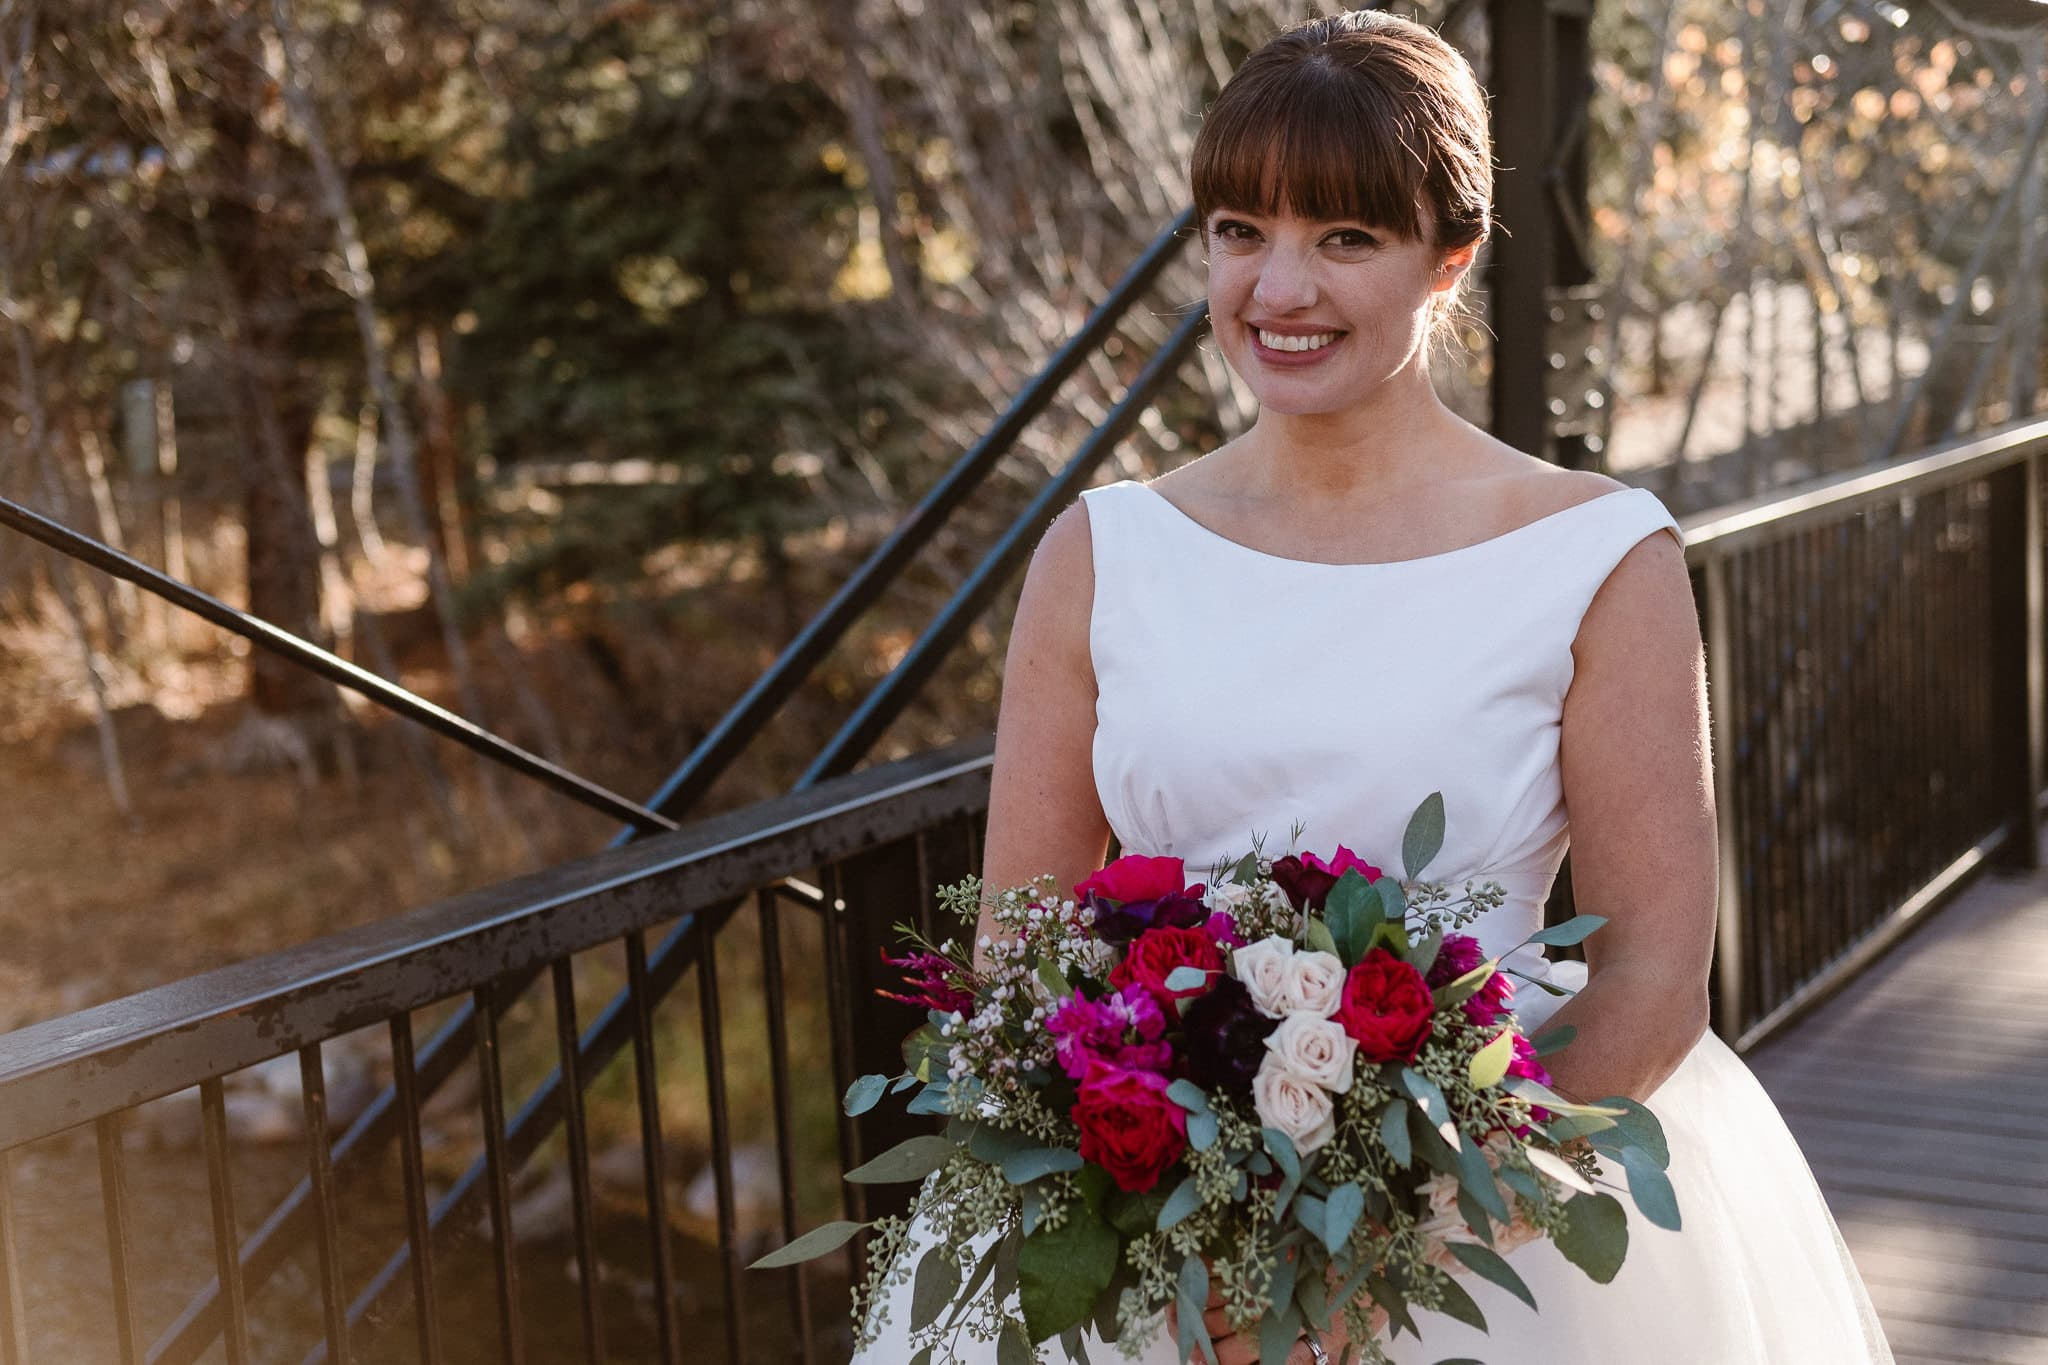 Silverthorne Pavilion wedding photography, Colorado wedding photographer, bride portrait, classic Audrey Hepburn style wedding dress